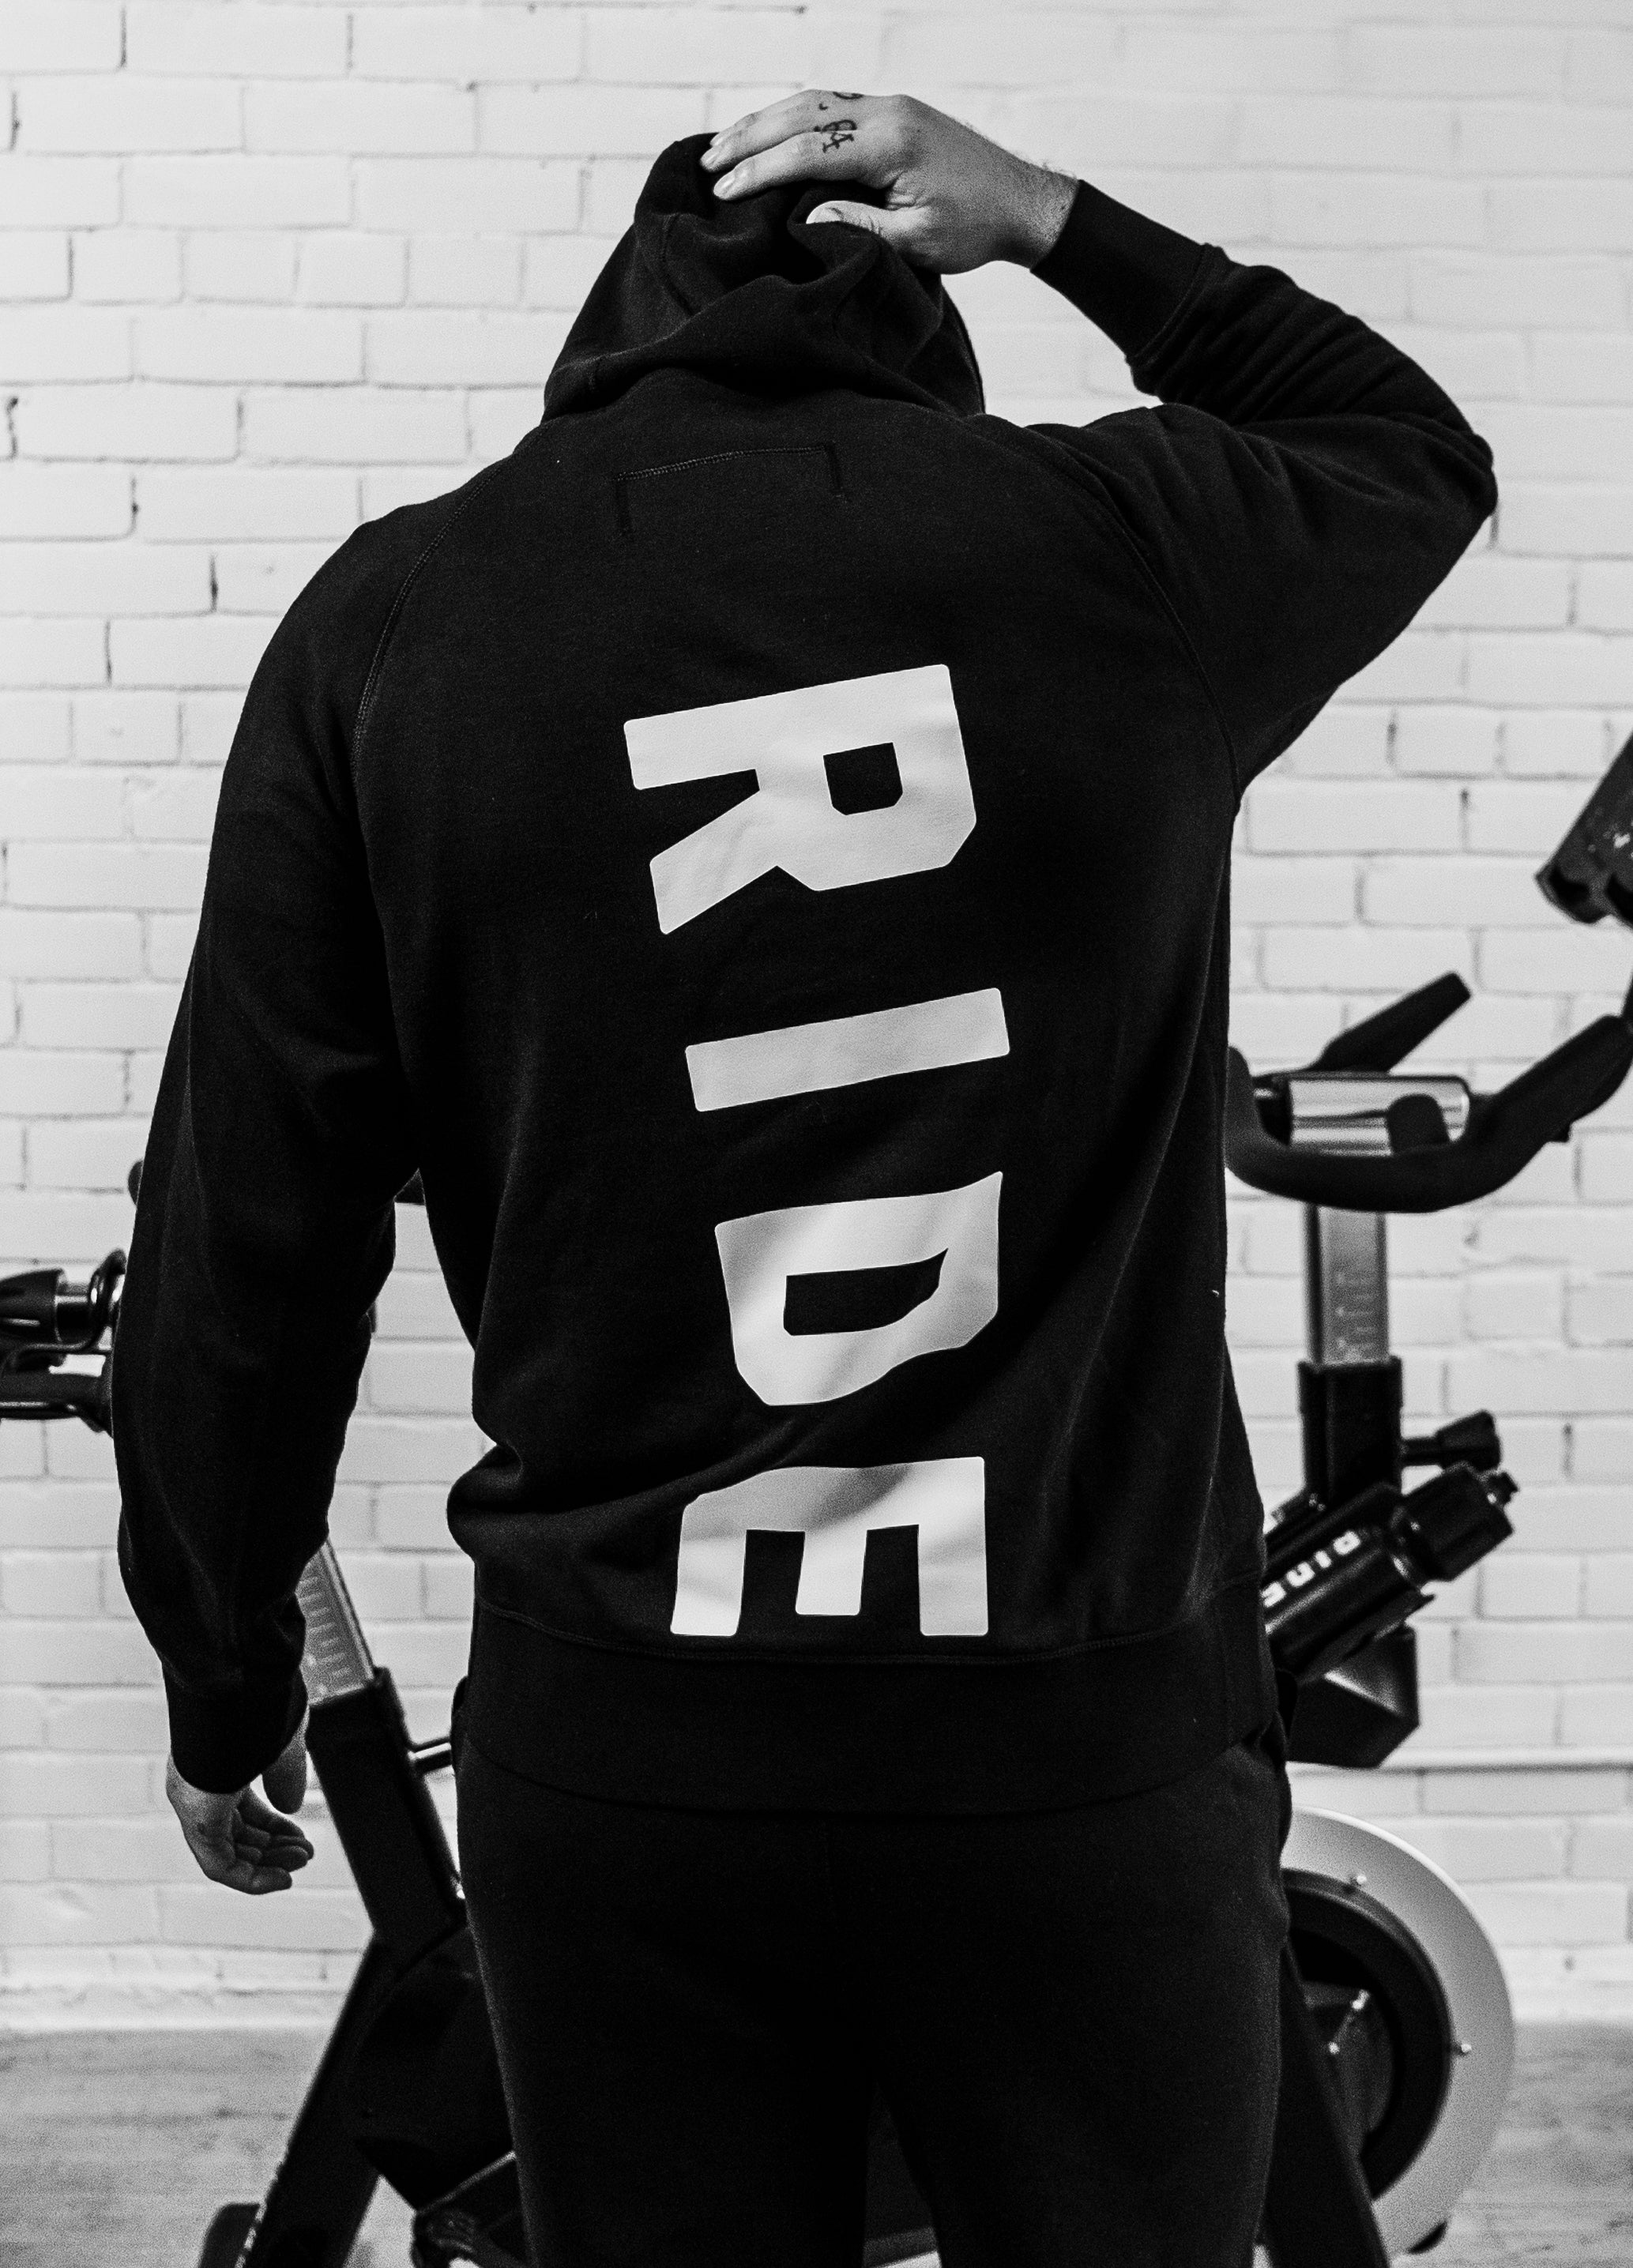 THE BIKE by RIDE CYCLE CLUB